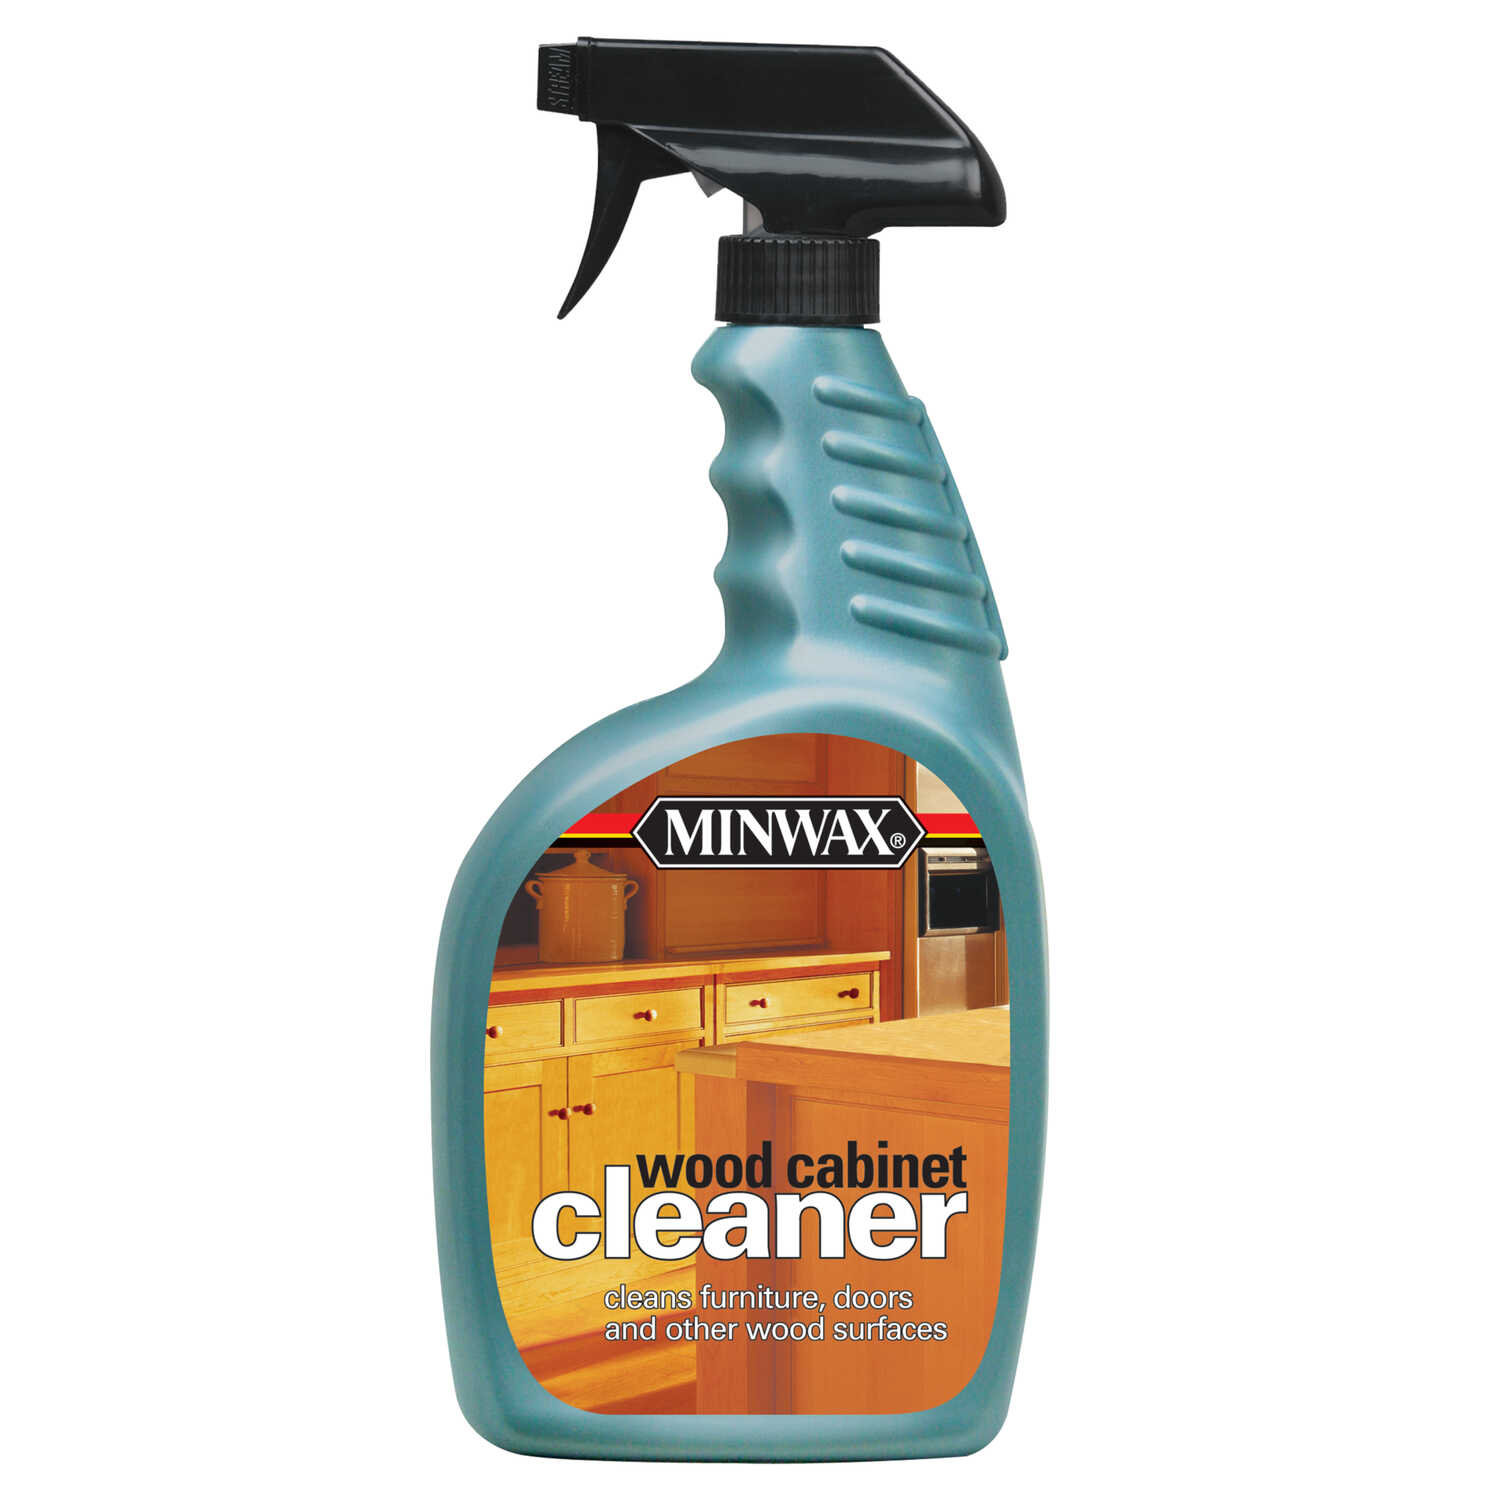 Minwax  No Scent Floor Cleaner  32 oz. Liquid